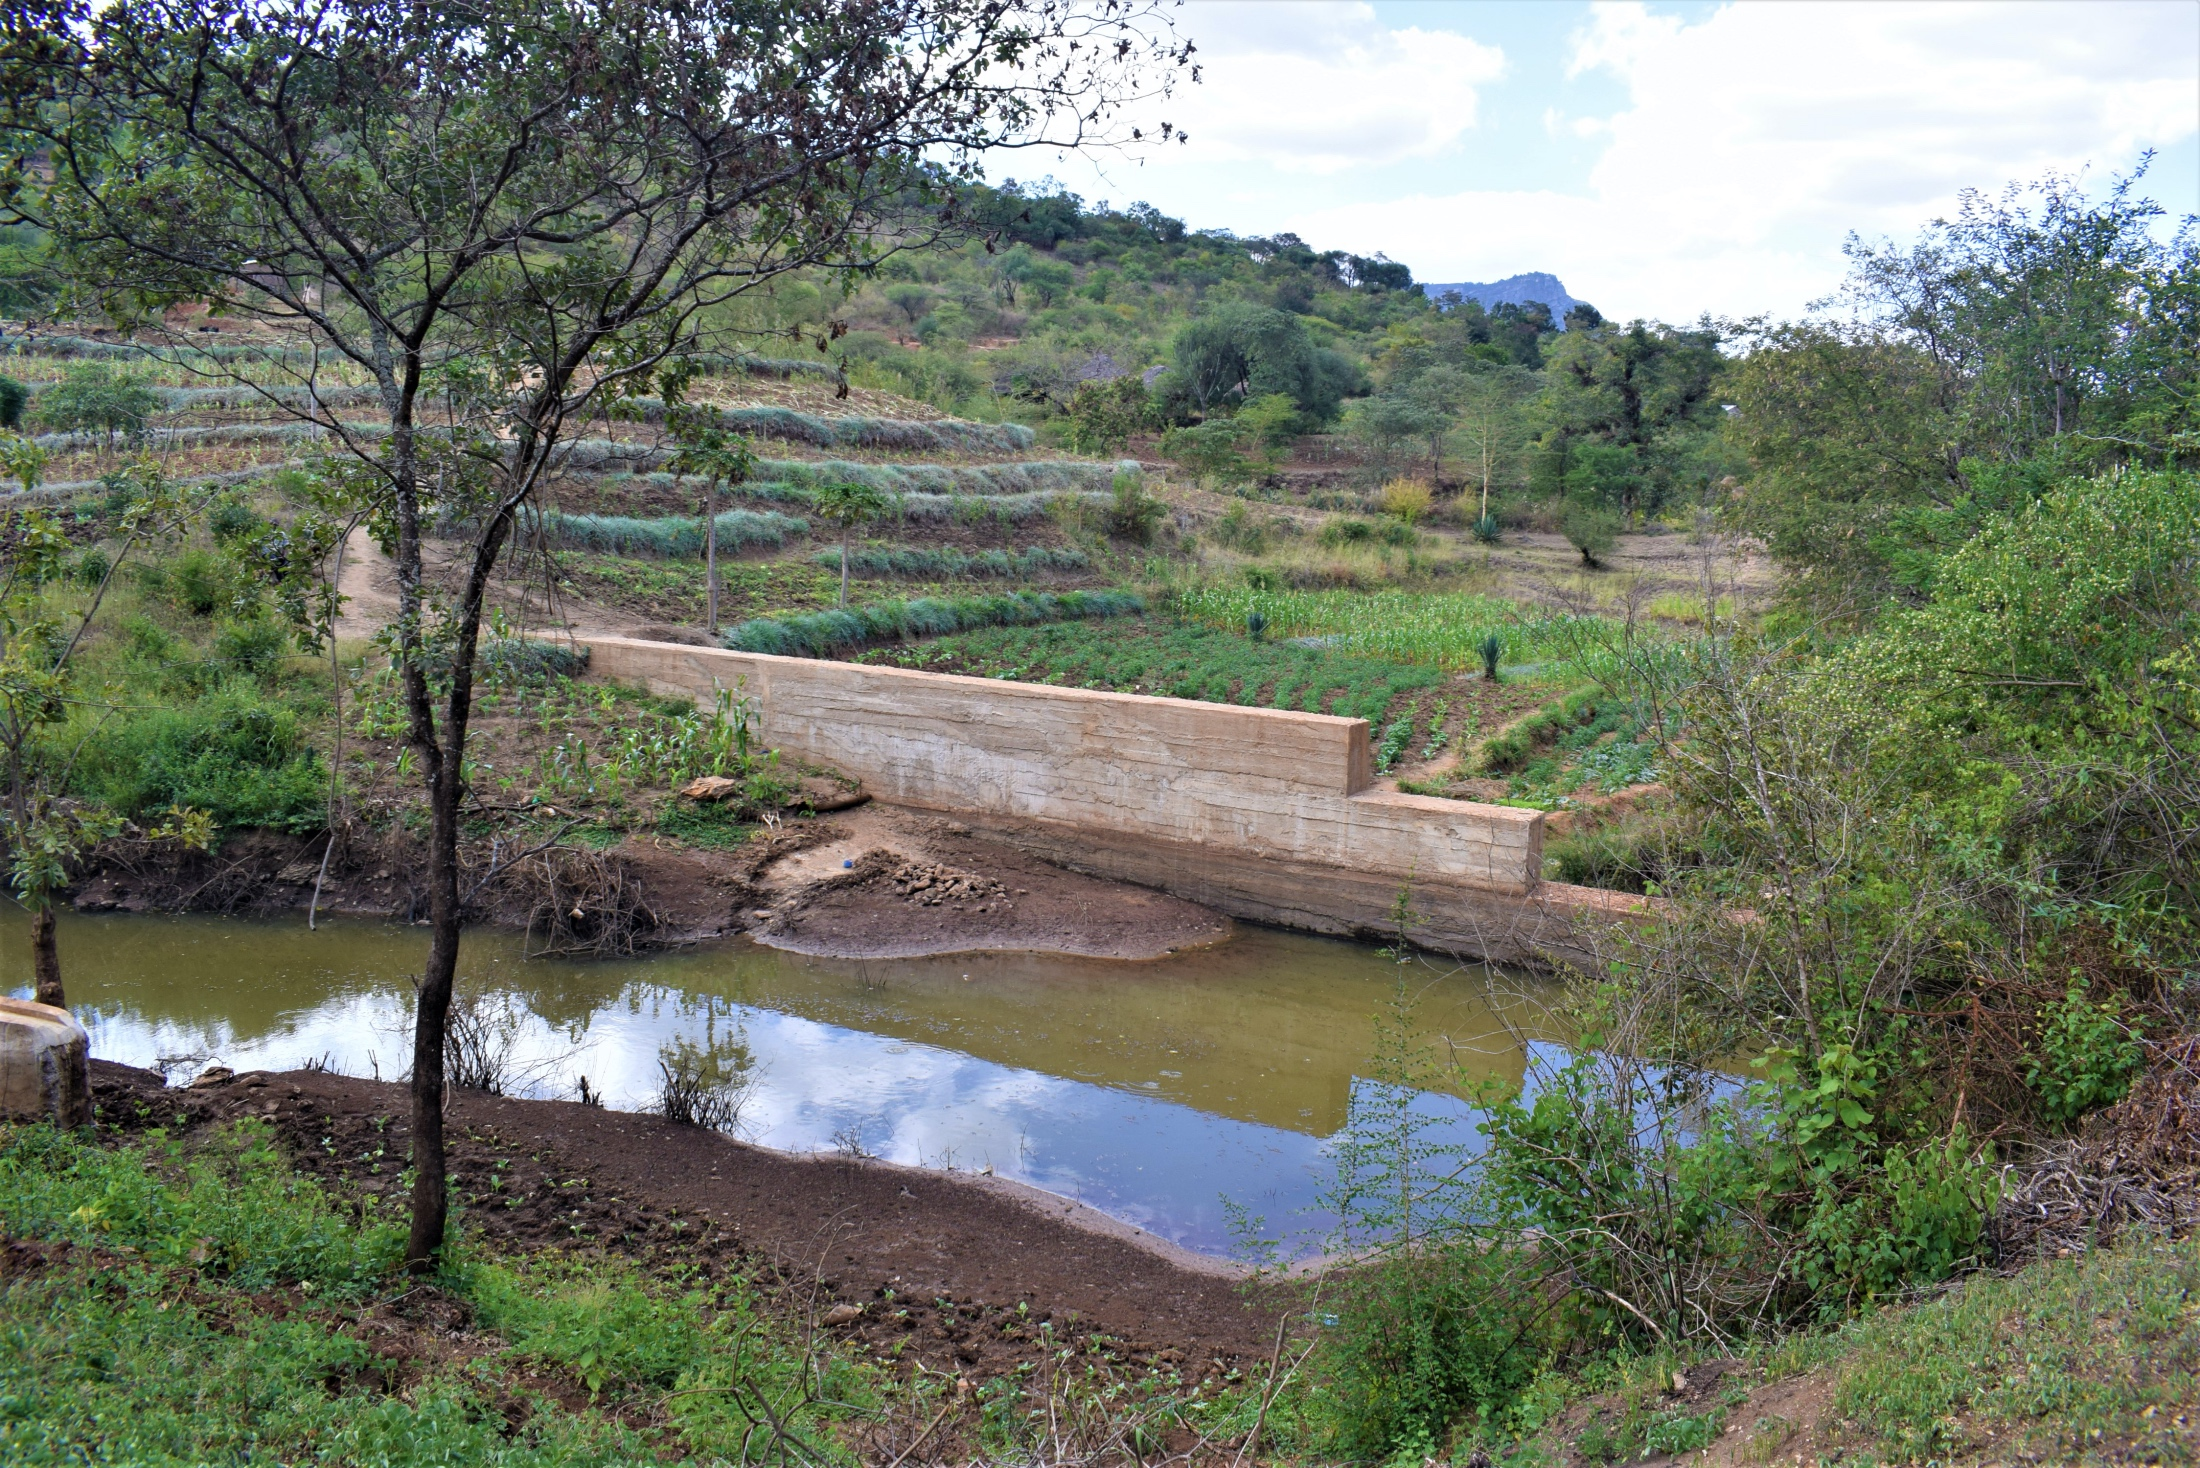 The Water Project : kenya18192-dam-and-farmlands-a-year-later